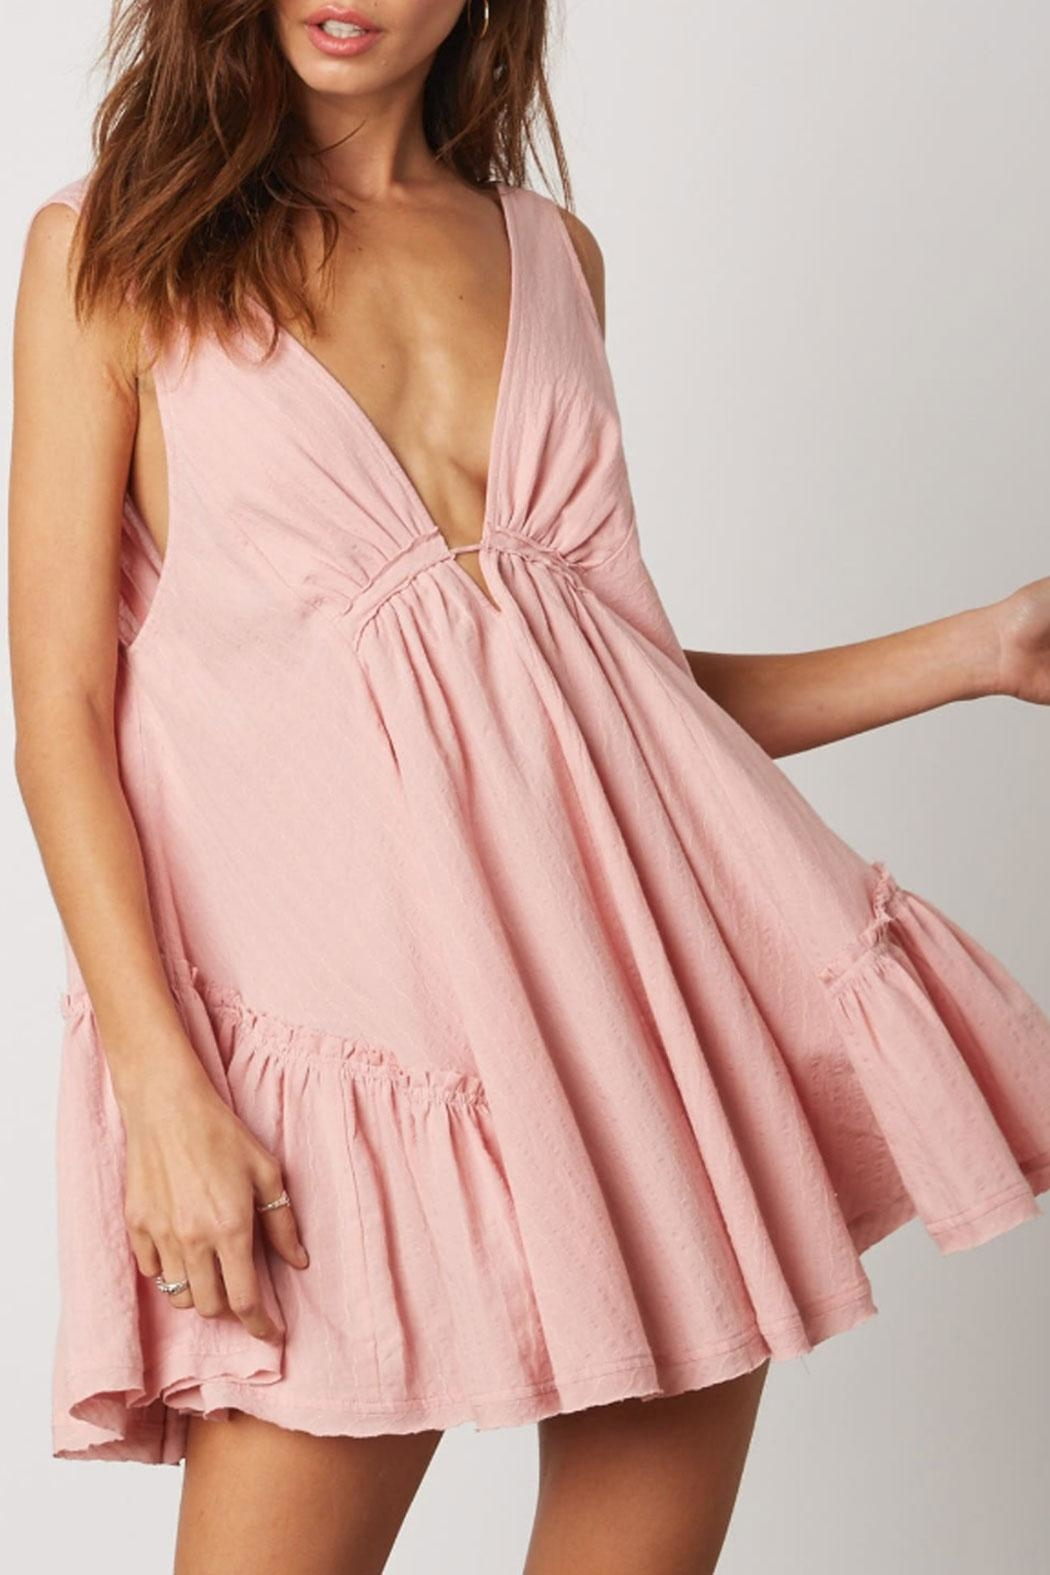 Cotton Candy Deep-V Swing Dress - Side Cropped Image